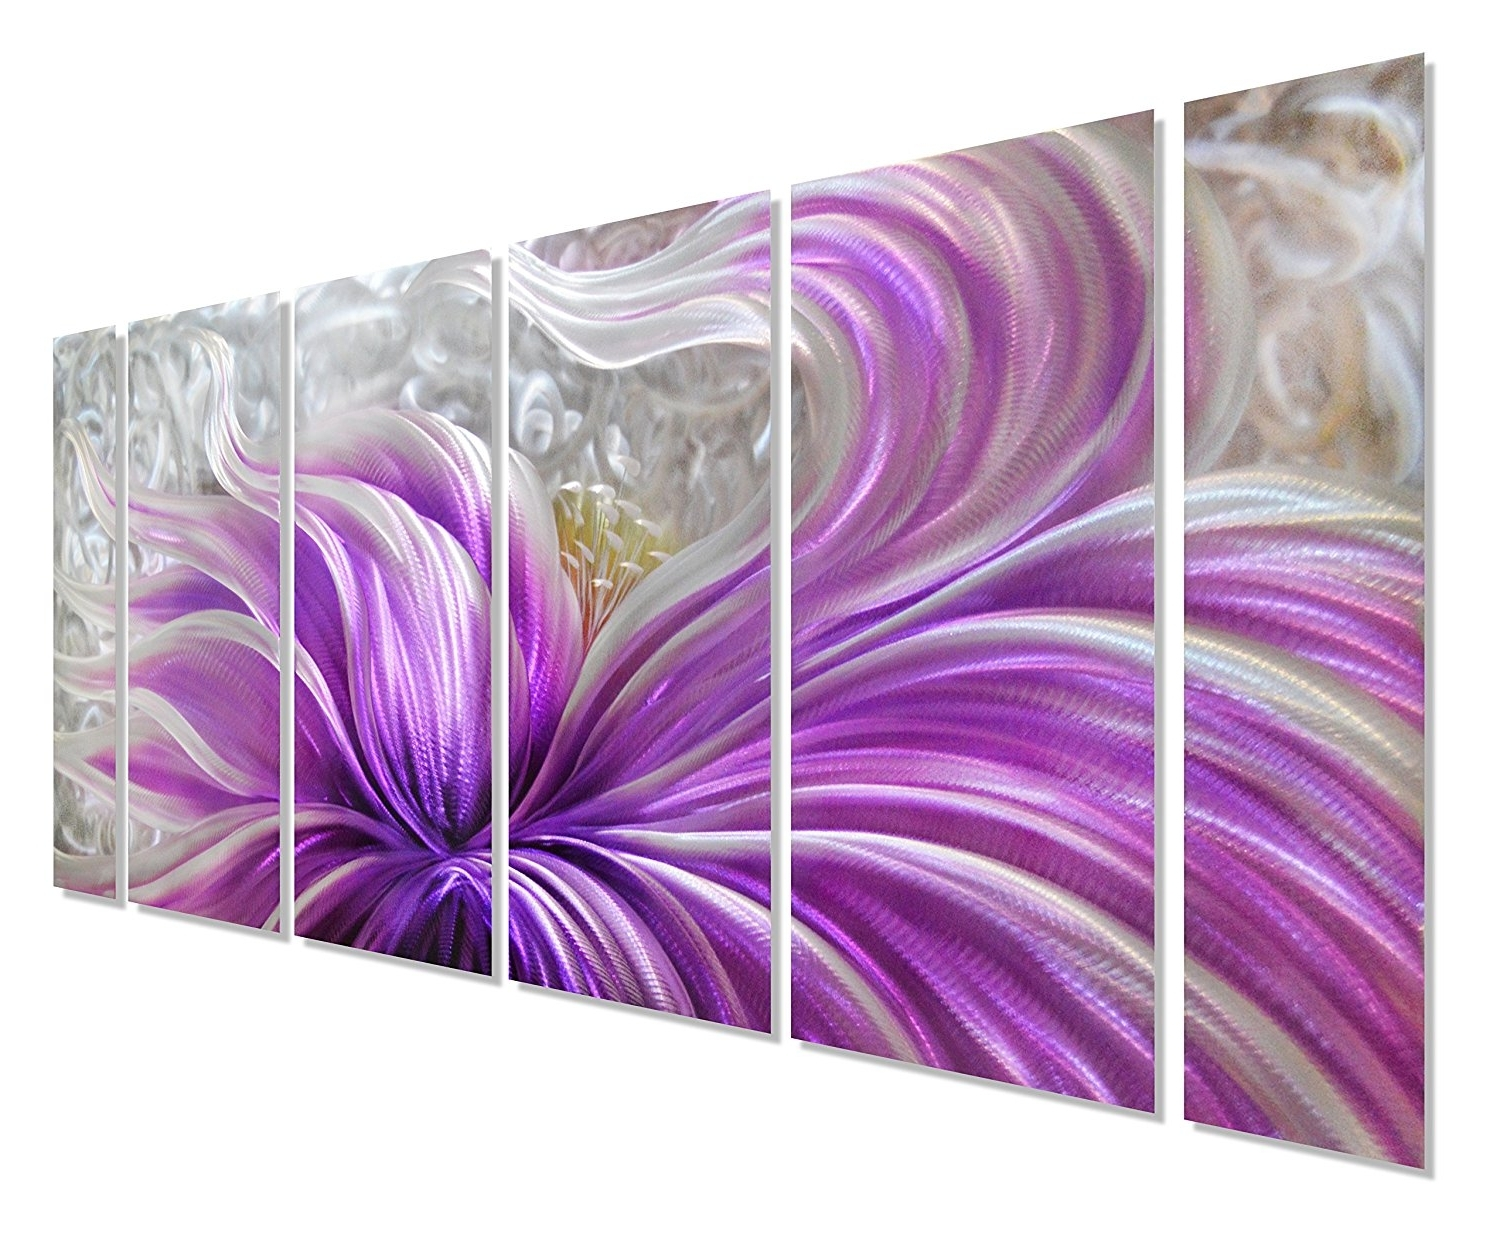 Purple Flower Metal Wall Art Intended For Most Up To Date Amazon: Pure Art Purple Blossoms Flower Metal Wall Art (View 11 of 15)